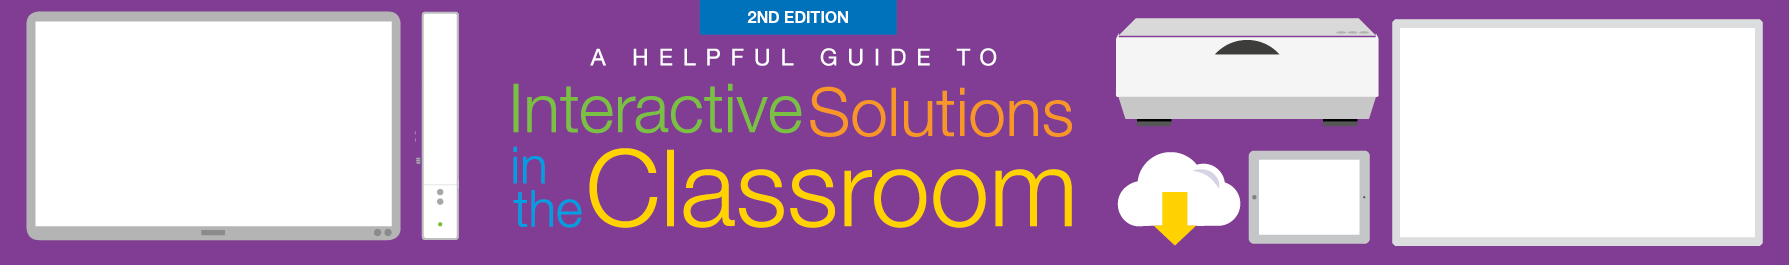 Whole-Class Learning Solutions Guide